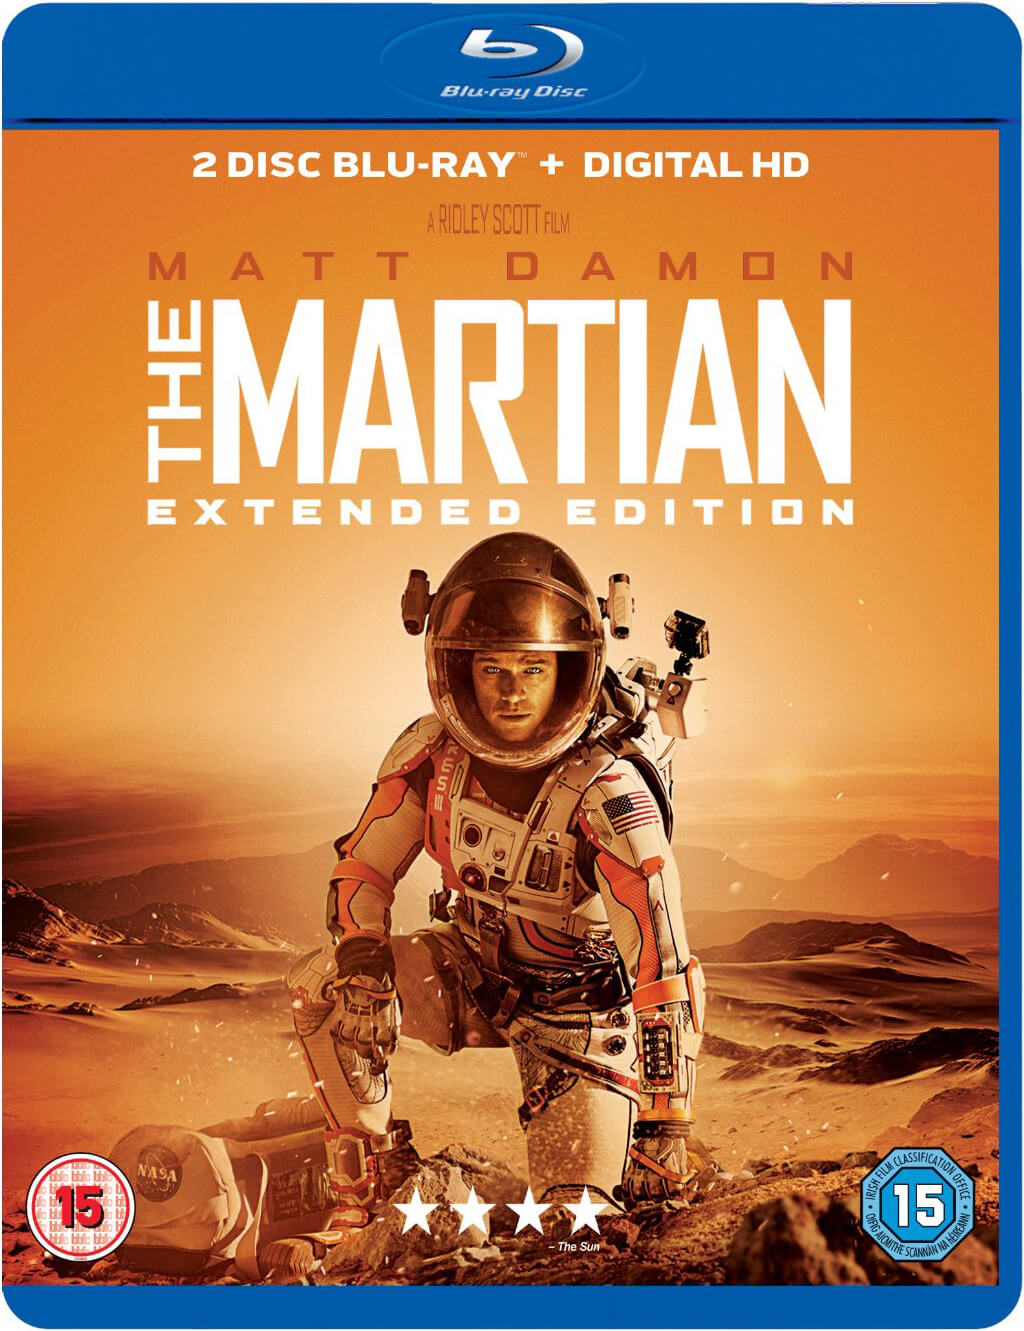 The Martian - Extended Edition (Includes UV Copy)